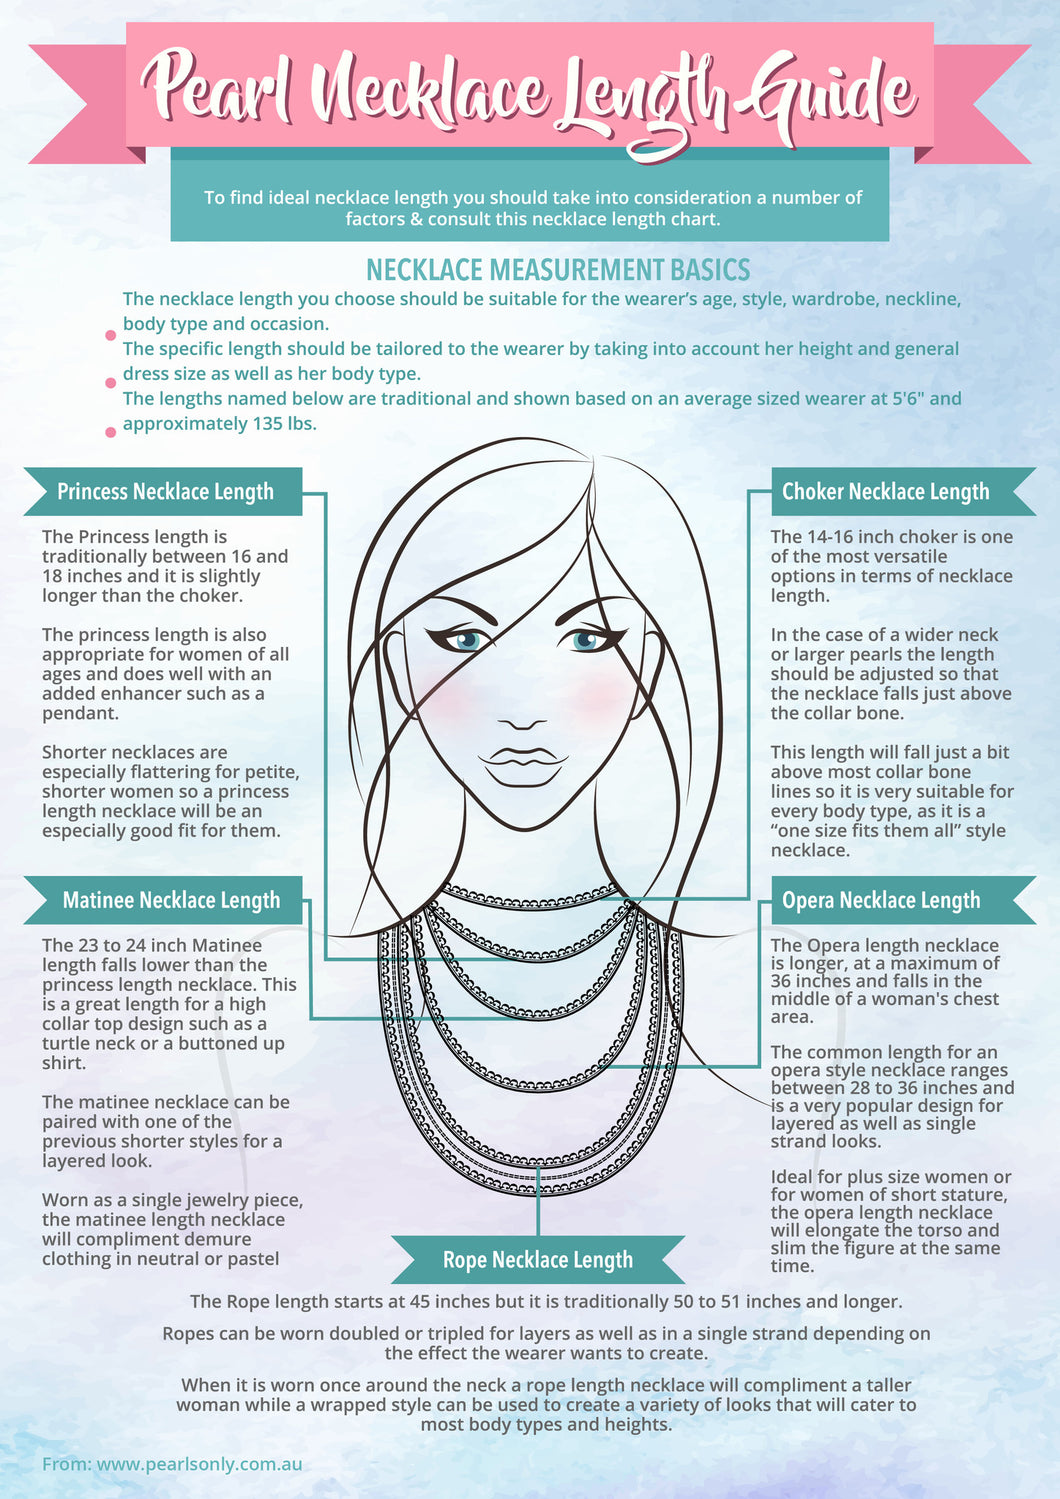 Pearl Necklace Lengths Infographic